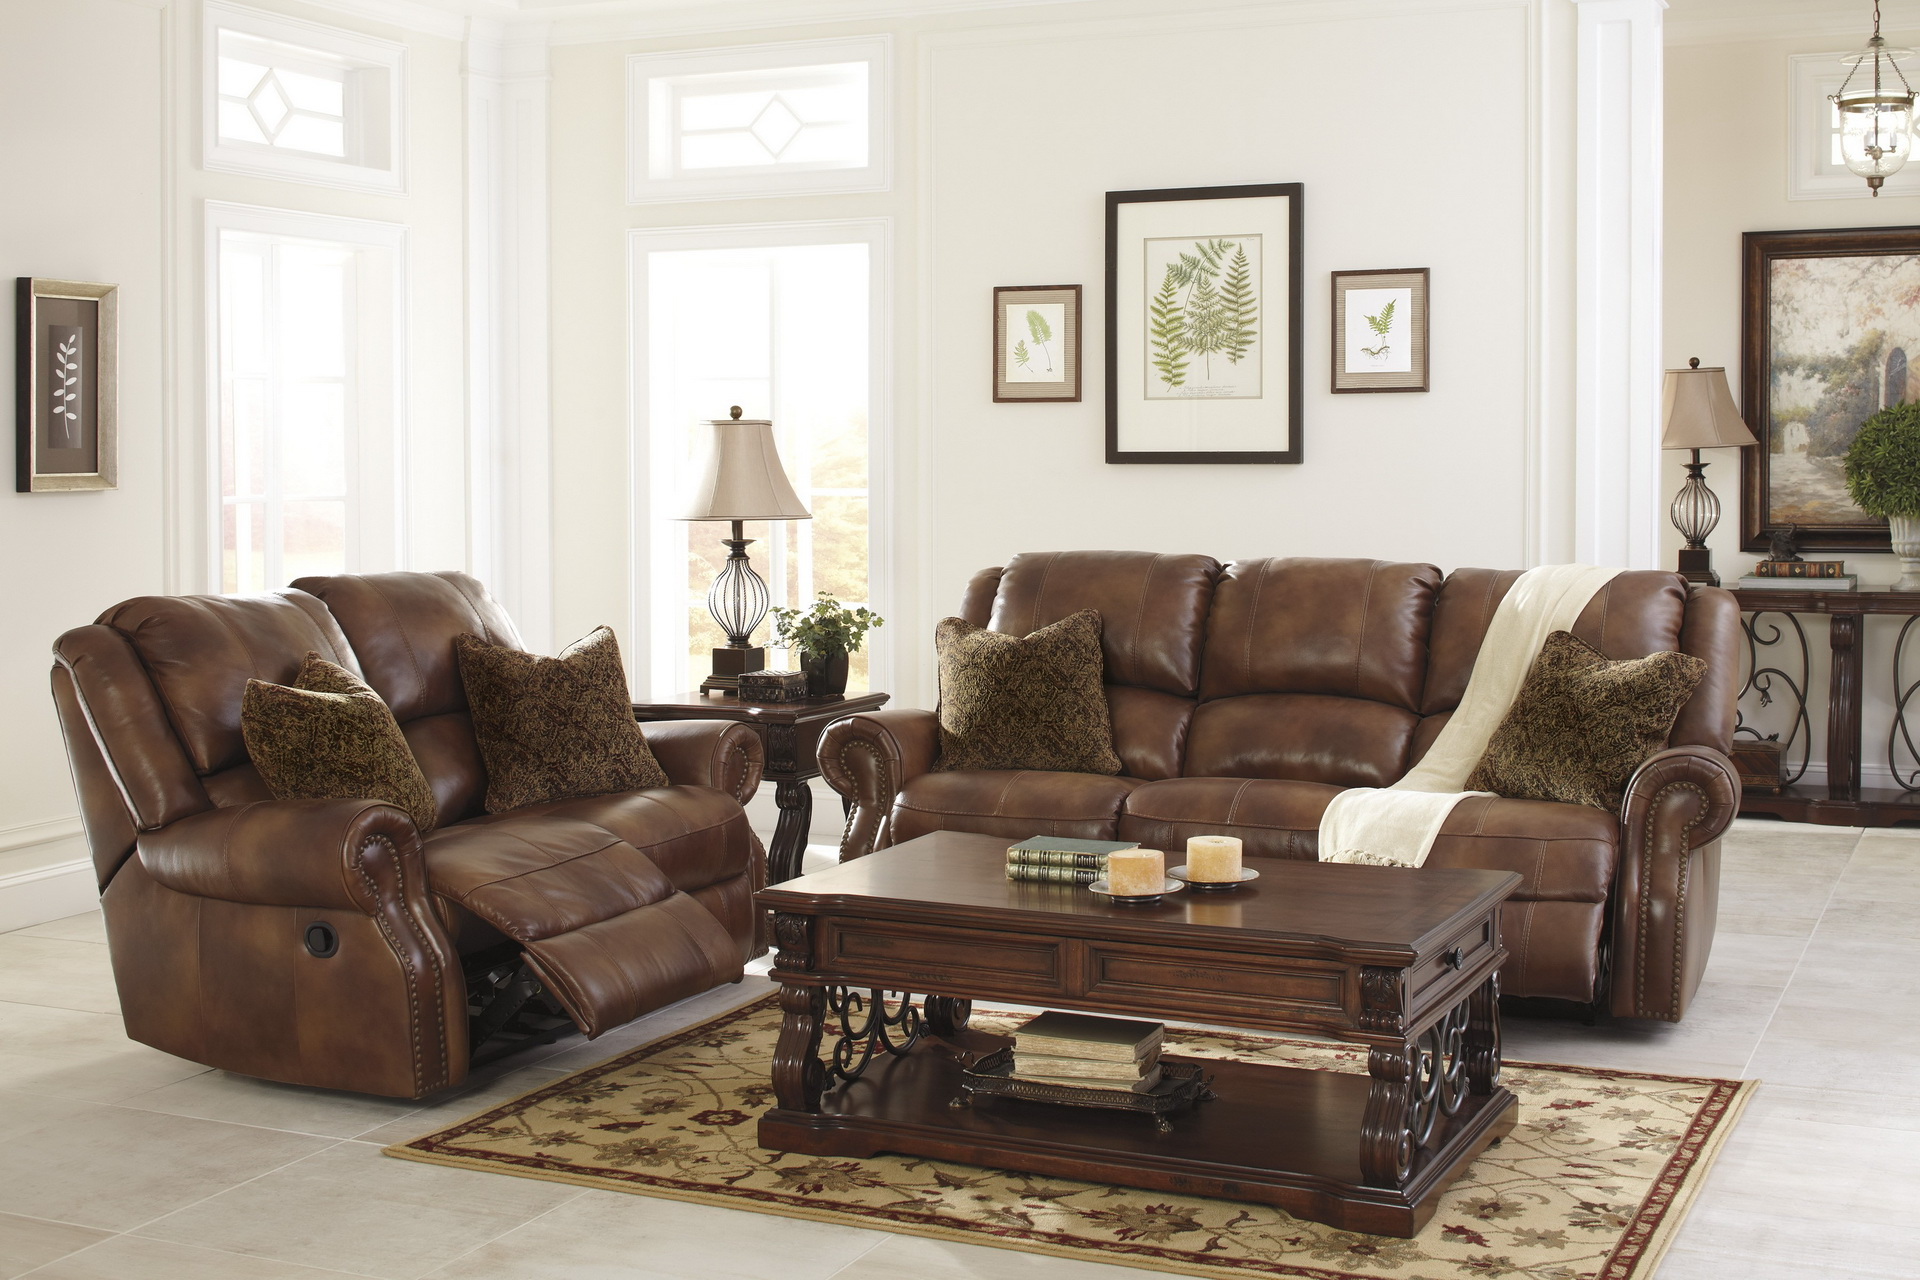 ashley living room sets sale 25 facts to about furniture living room sets 19392